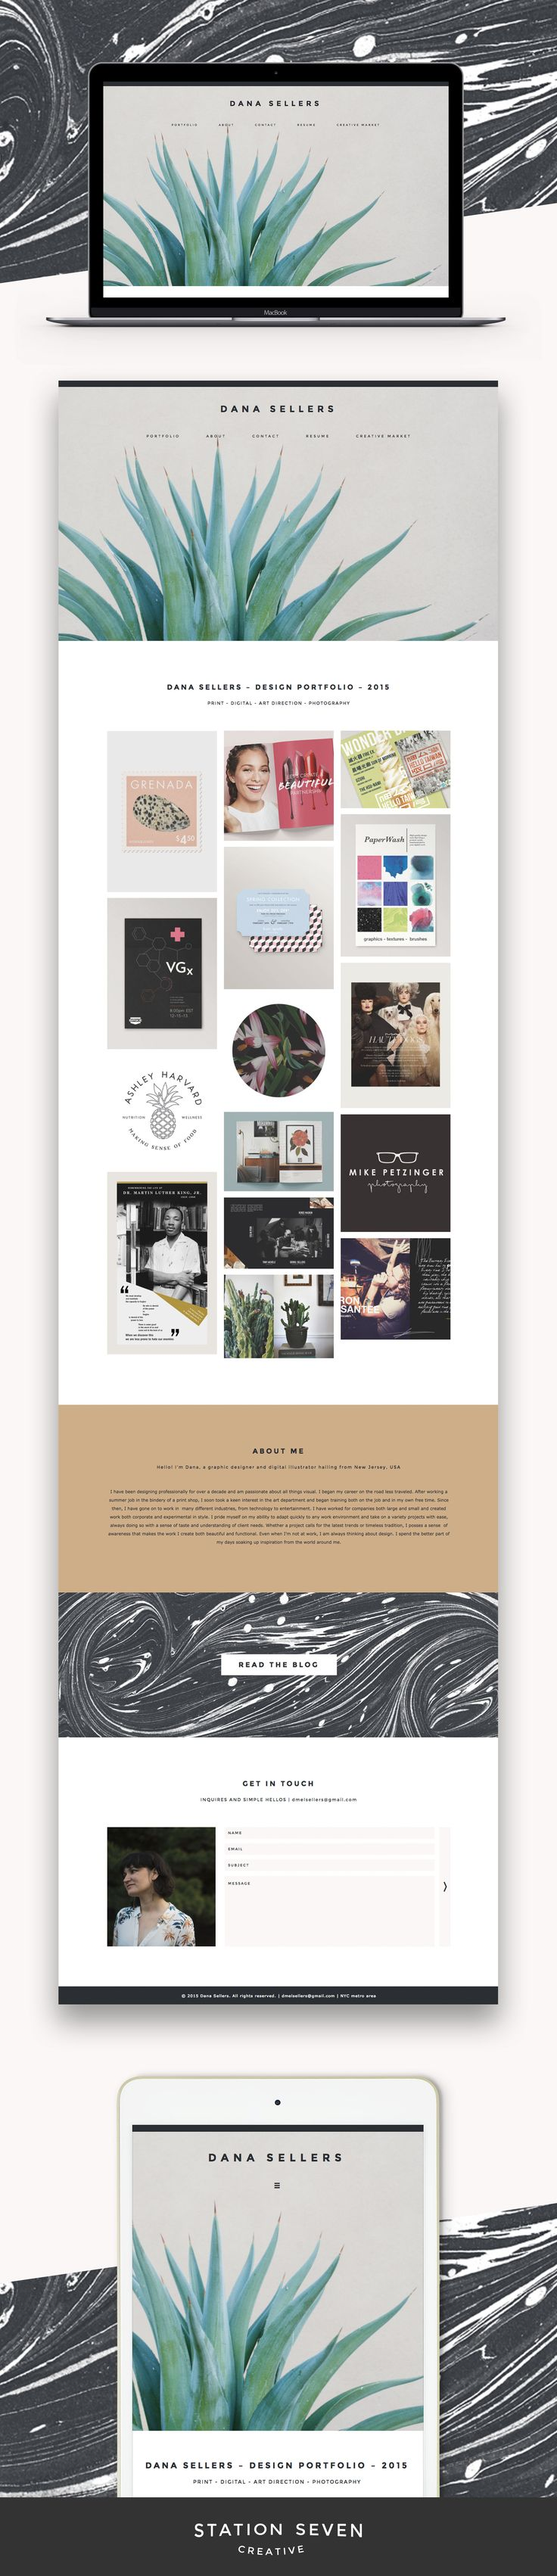 We love this modern and unique site by Dana Seller running on Station Seven's Industry WordPress theme.. If you like UX, design, or design thinking, check out theuxblog.com